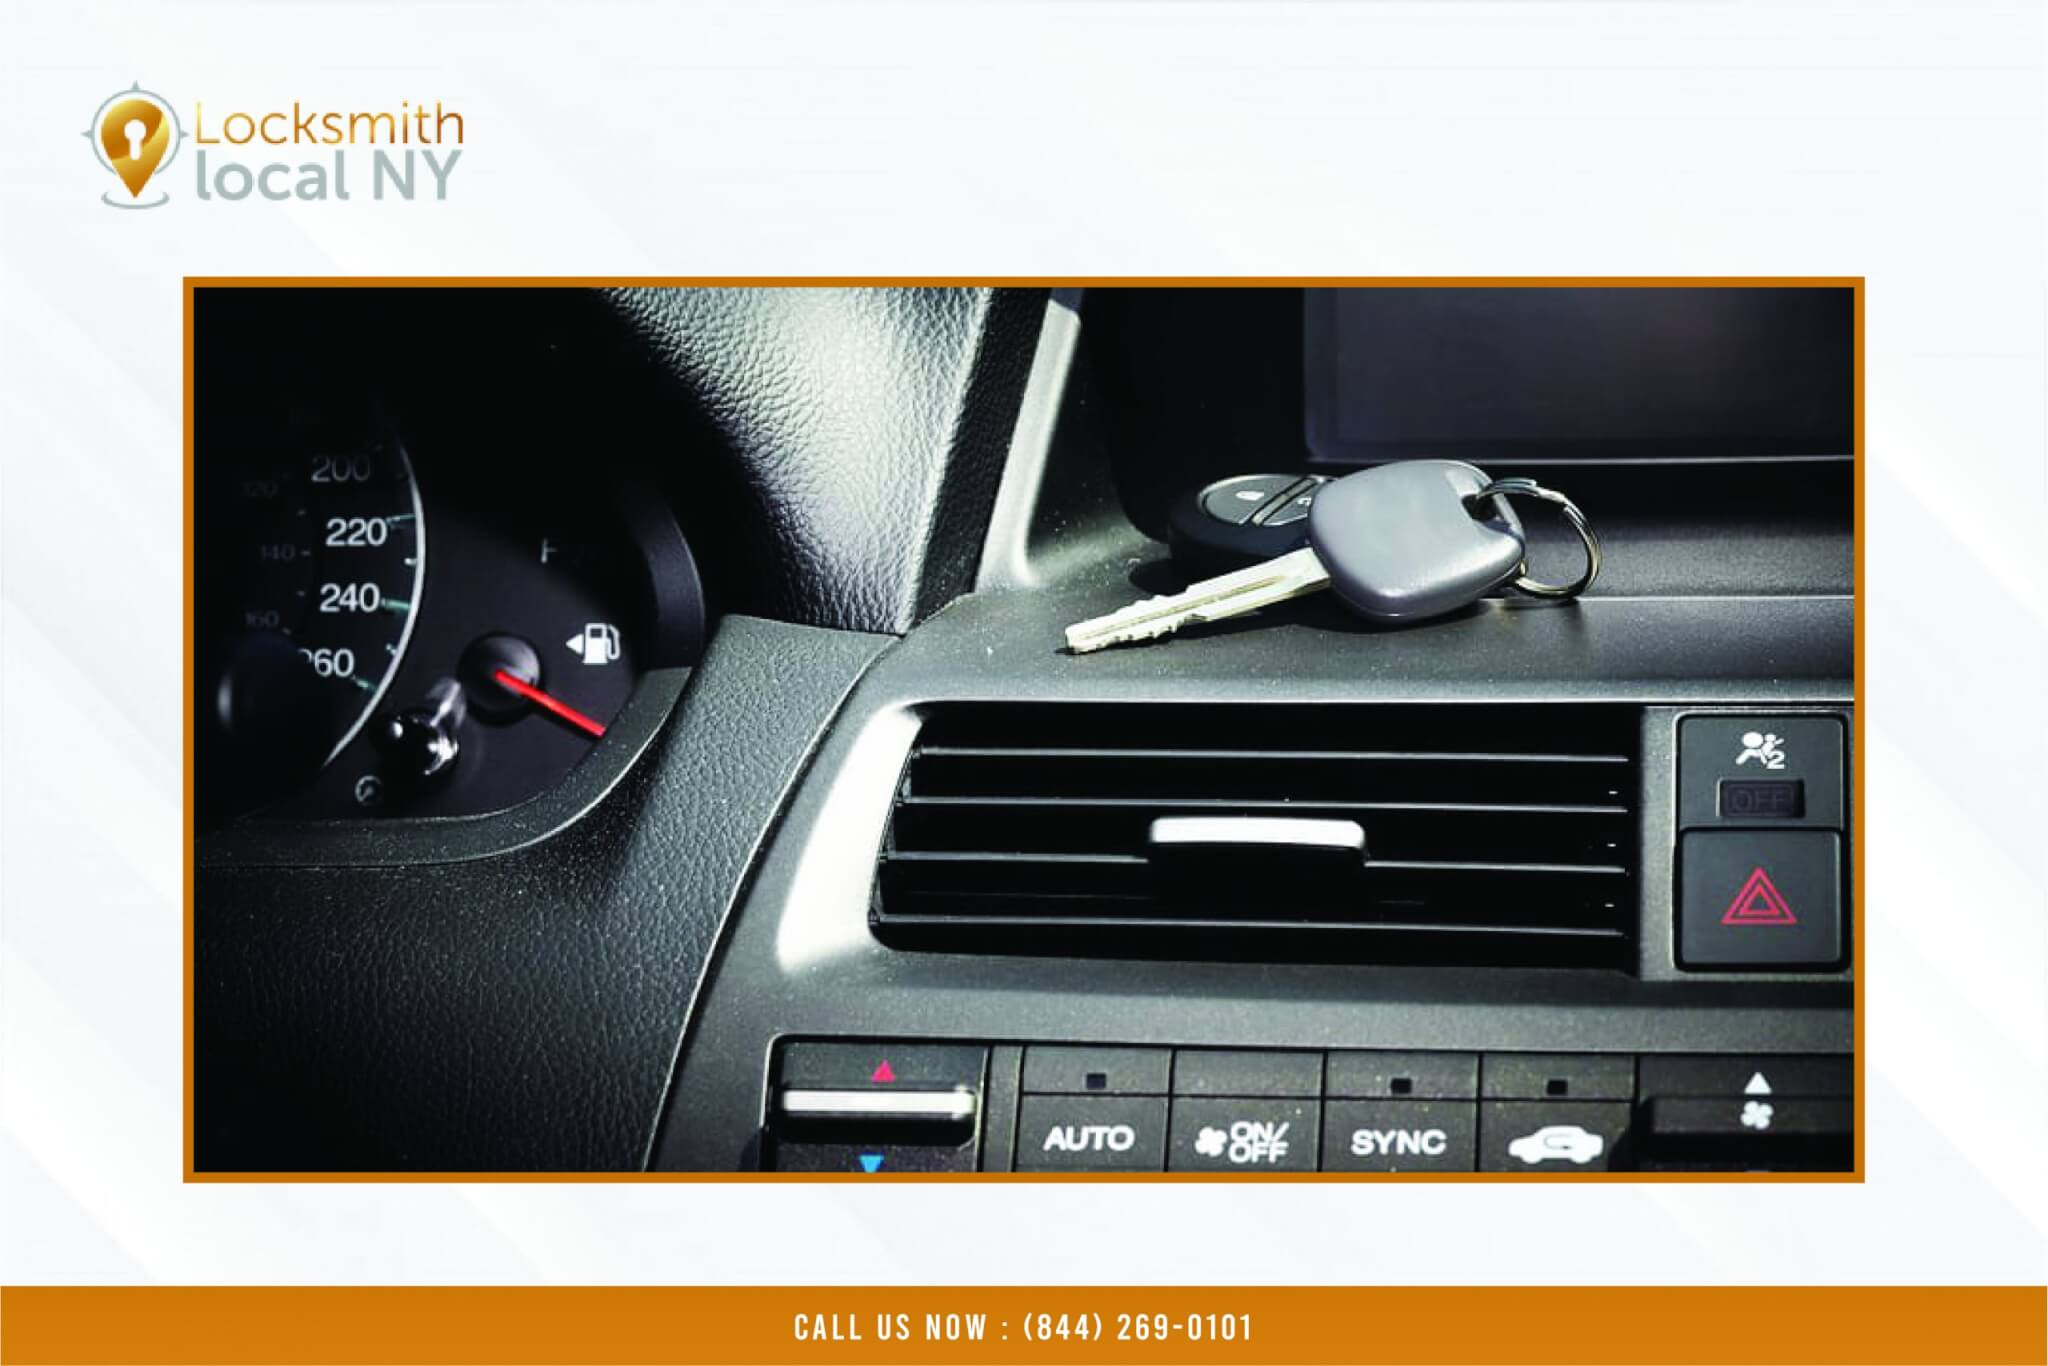 Car Locksmith Greenpoint, Brooklyn NY – Locksmith Local NY